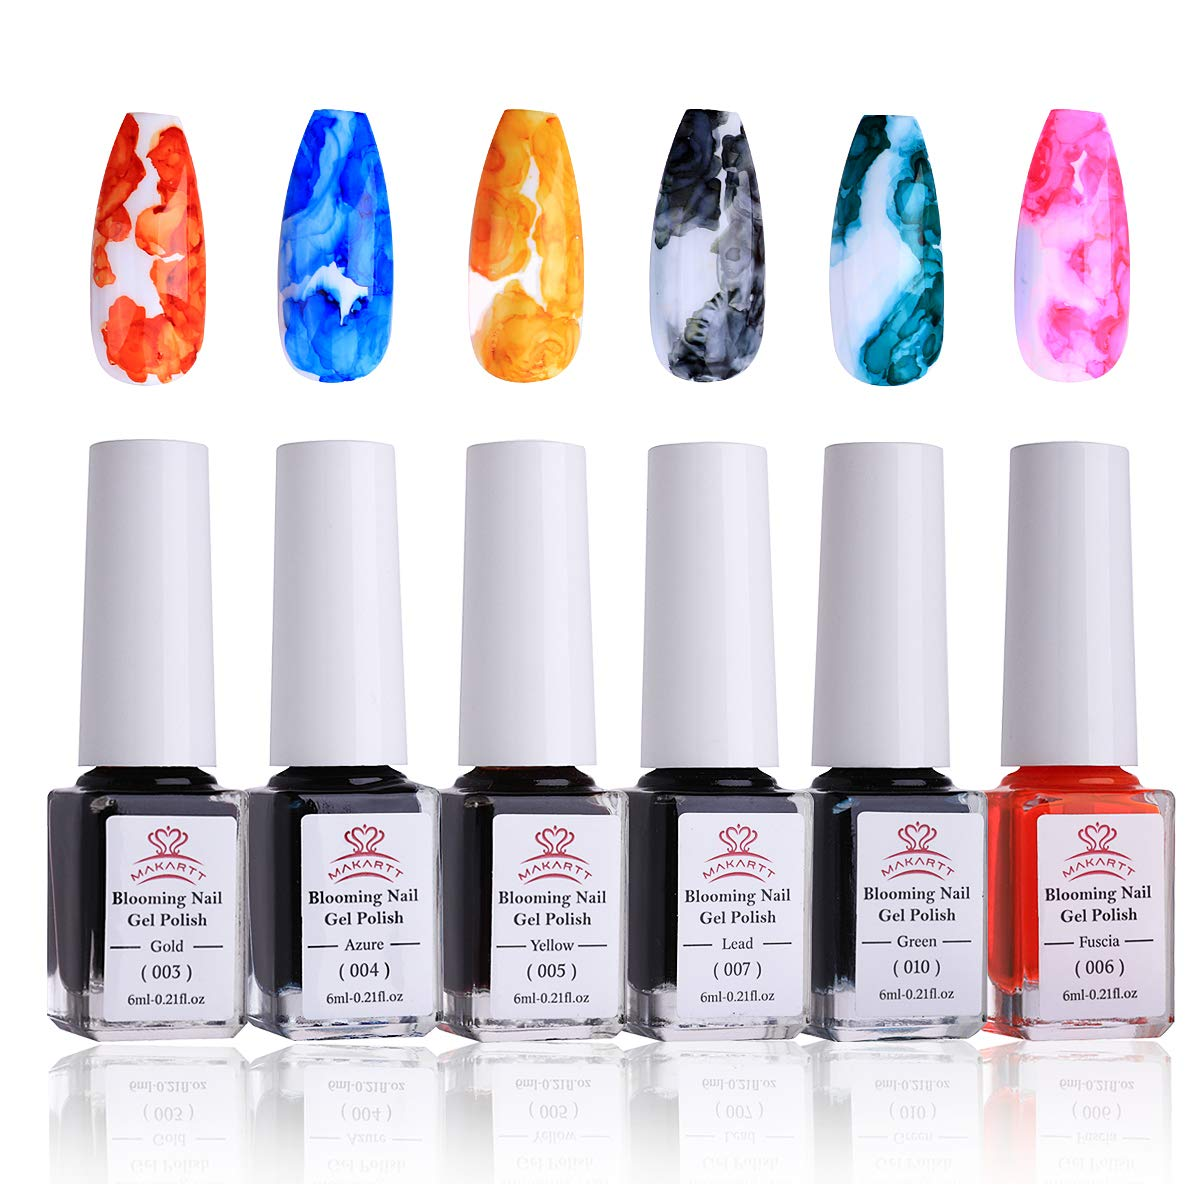 Makartt Blooming Nail Polish Alcohol Ink Watercolor Pink Blossom Gel Nail Polish Magic Manicuring Kit Work With Transparent Red Marble Nail Vanish Young Nail Art Design Summer 6 Colors Set